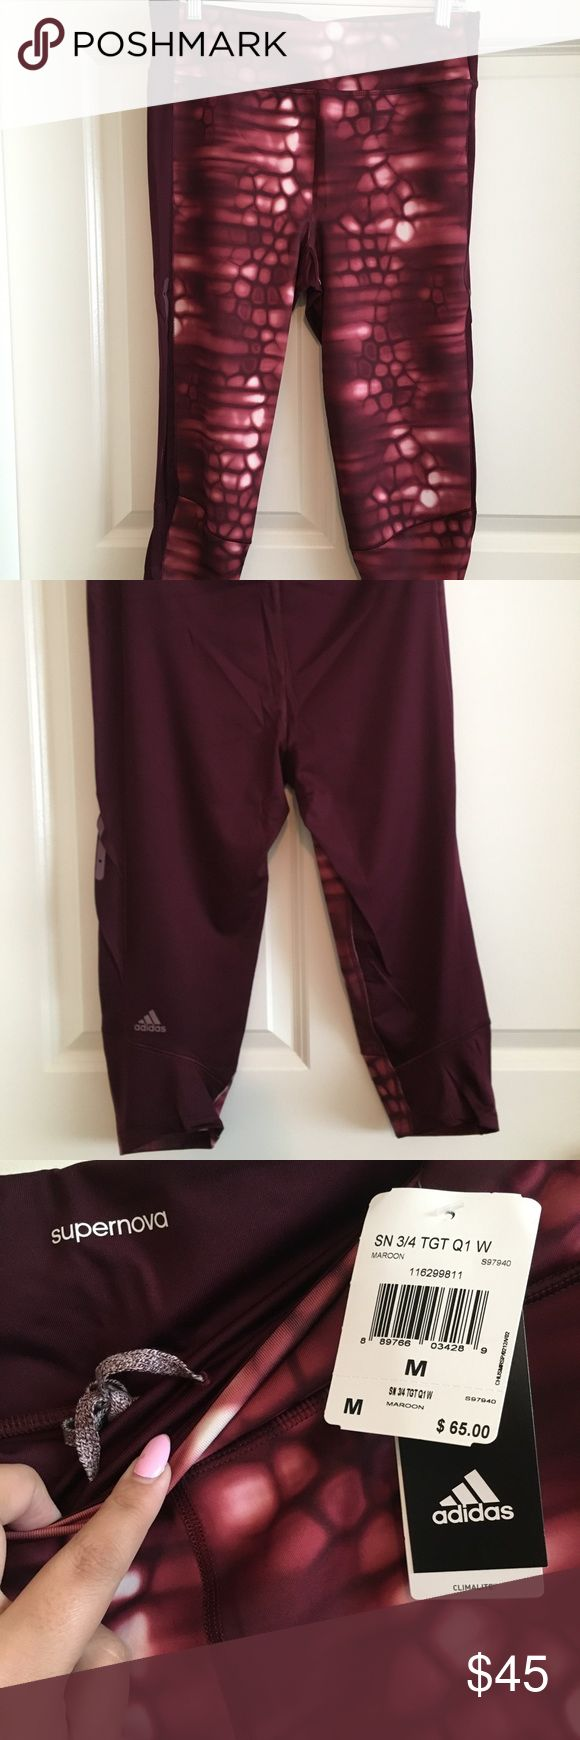 Adidas Supernova 3/4 Tight New, never worn & still with tags. No low ball offers or trades please :) adidas Pants Leggings